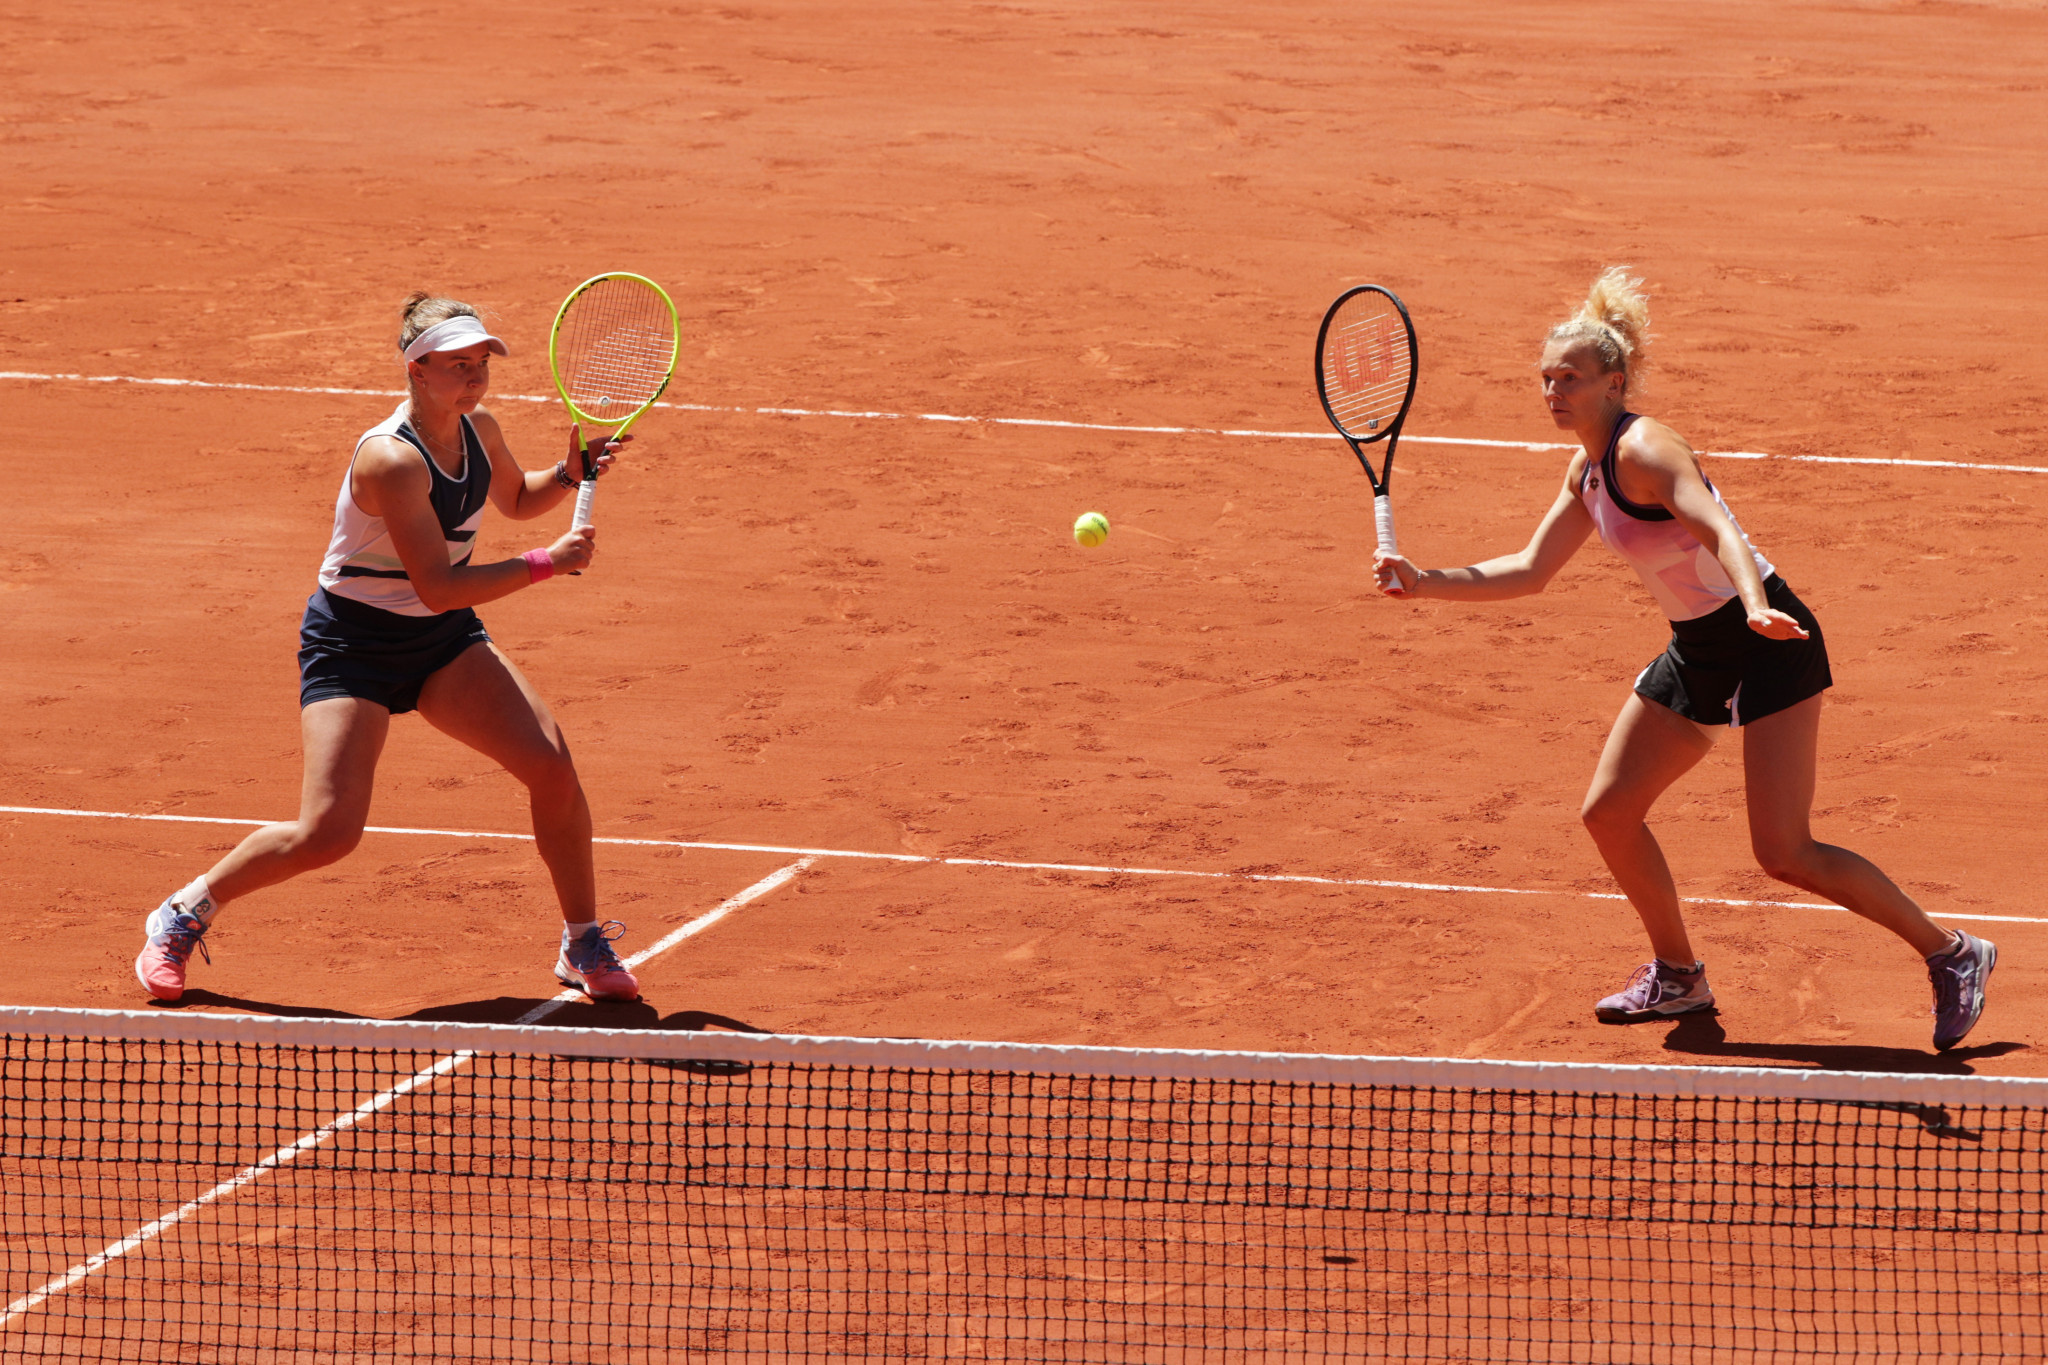 Czech Barbora Krejčíková, left, became the first player to win the women's singles and doubles at the French Open since 2000, as she a compatriot Kateřina Siniaková tasted victory in the doubles final today ©Getty Images